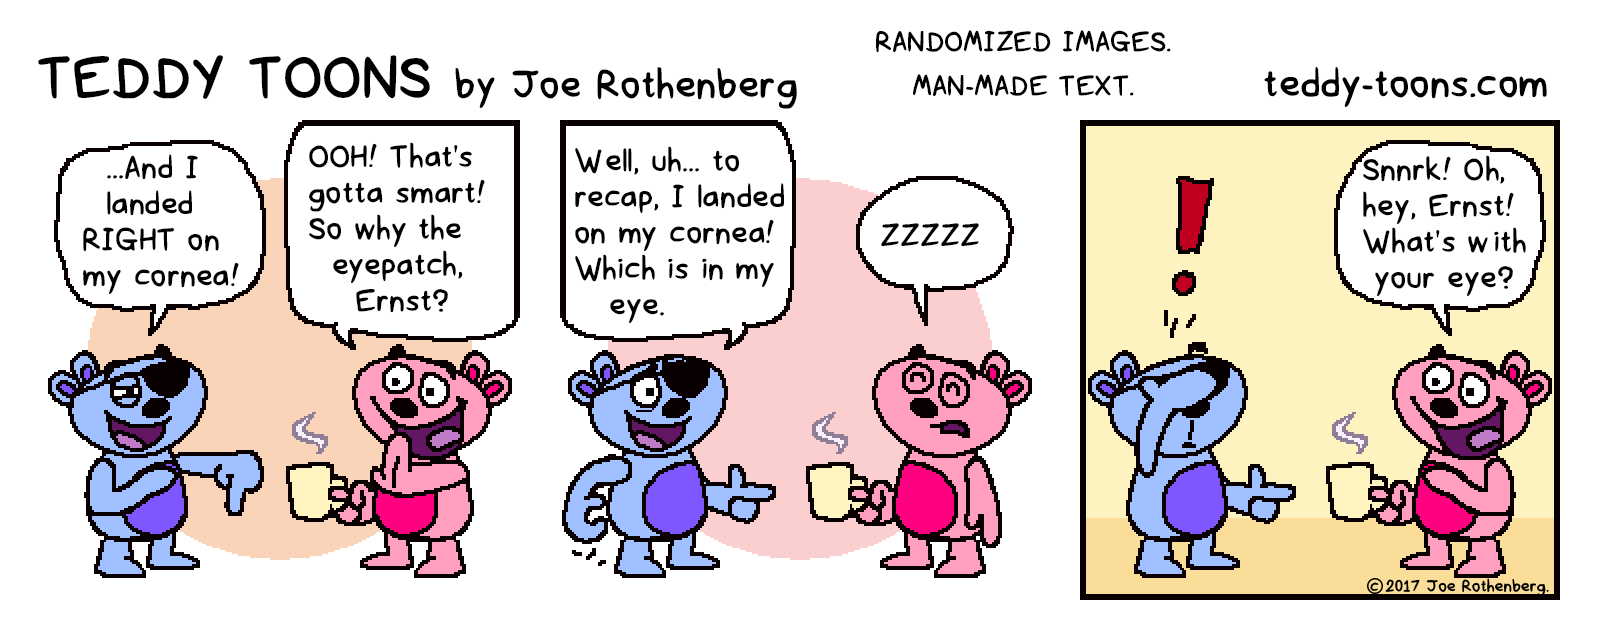 03-14-17.png